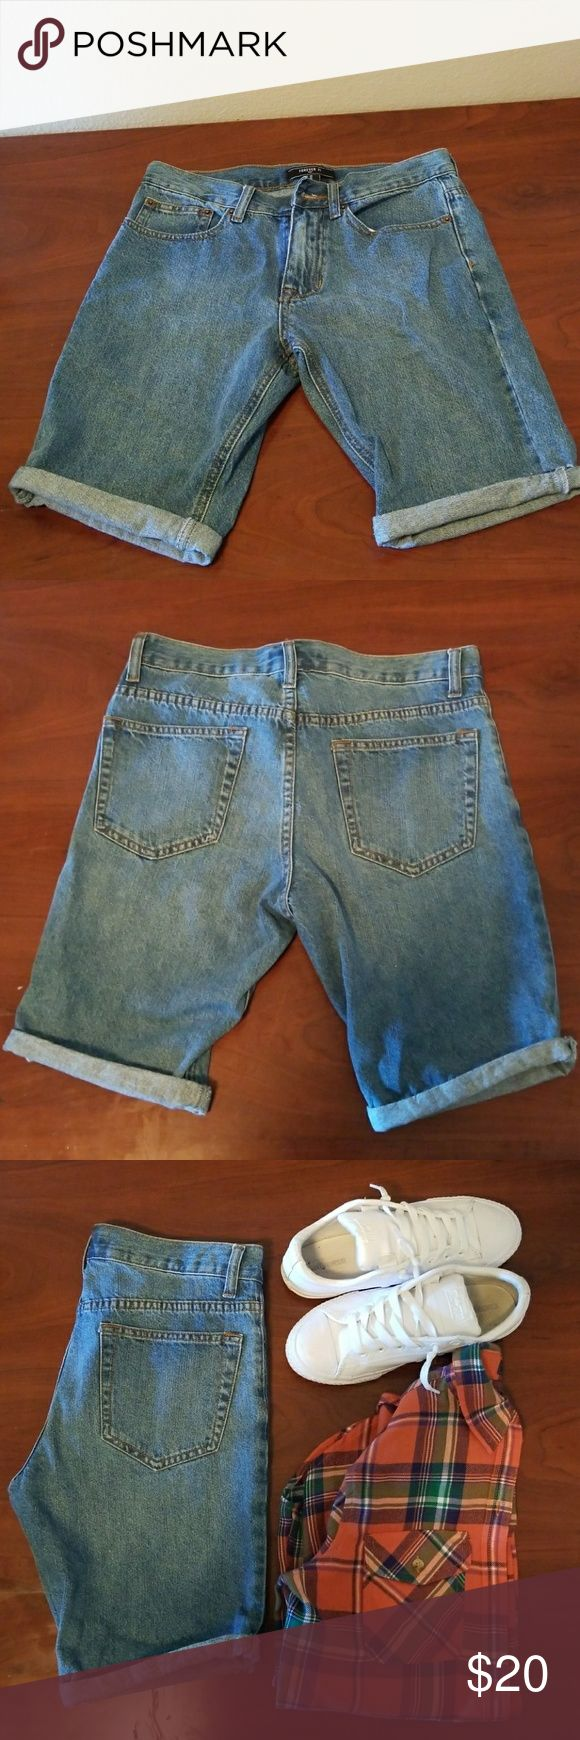 Forever 21 Mens Shorts Mens denim shorts Size 29 Cuff on the bottom, snug fit. Never worn after buying from store. Forever 21 Shorts Jean Shorts